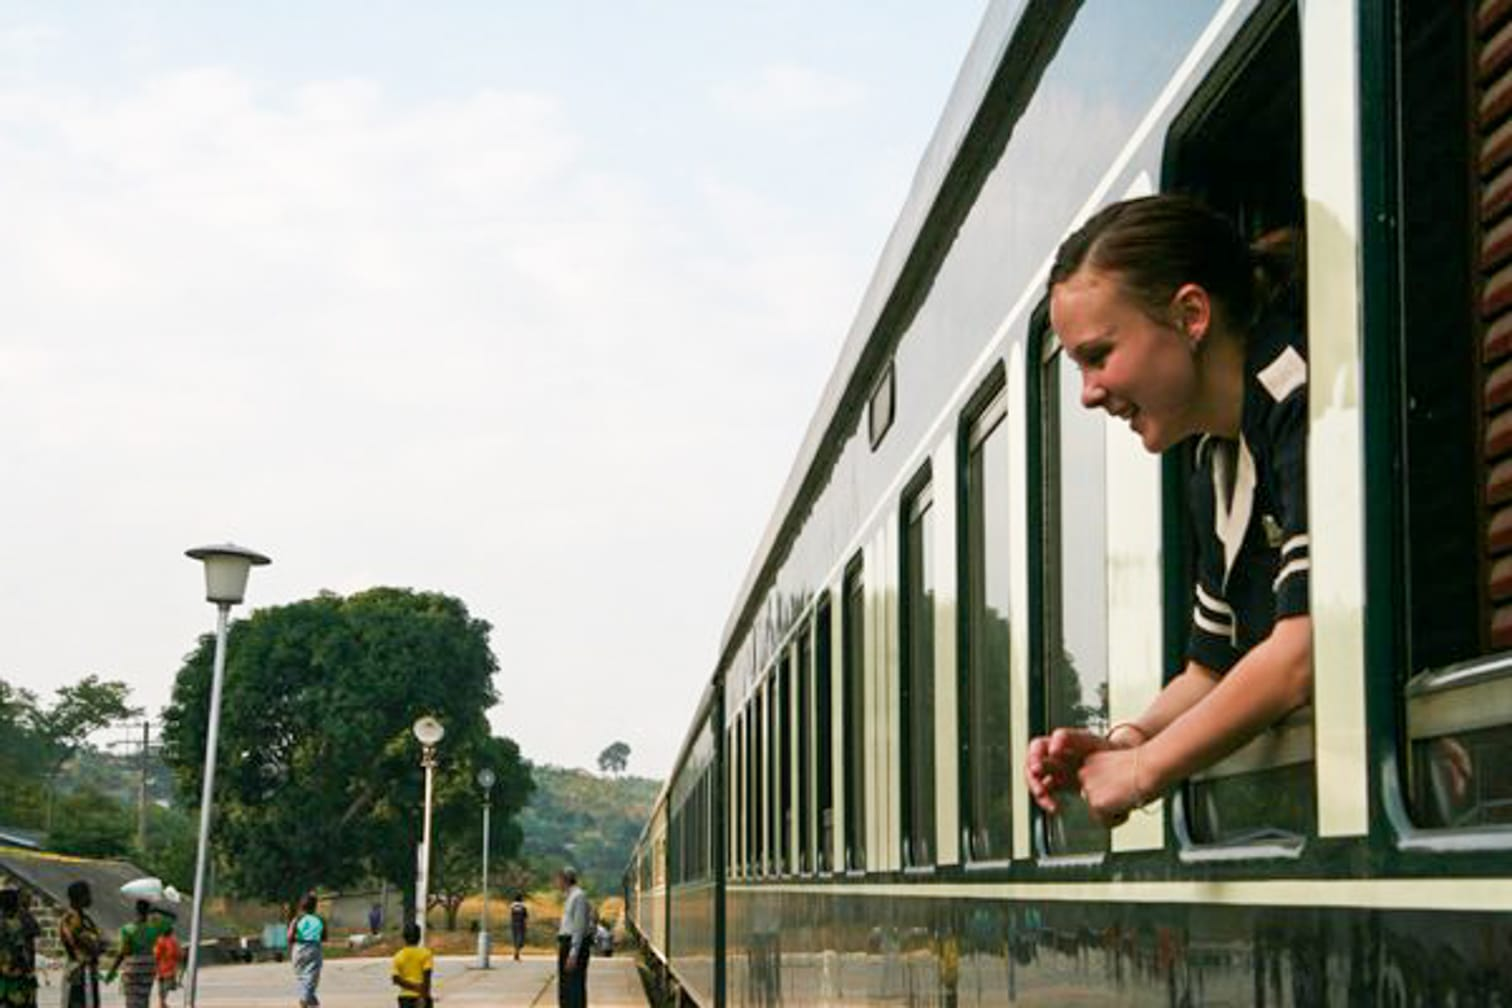 Staff looking out the window on the Rovos Rail's South African Collage From the Mountains to the Sea journey